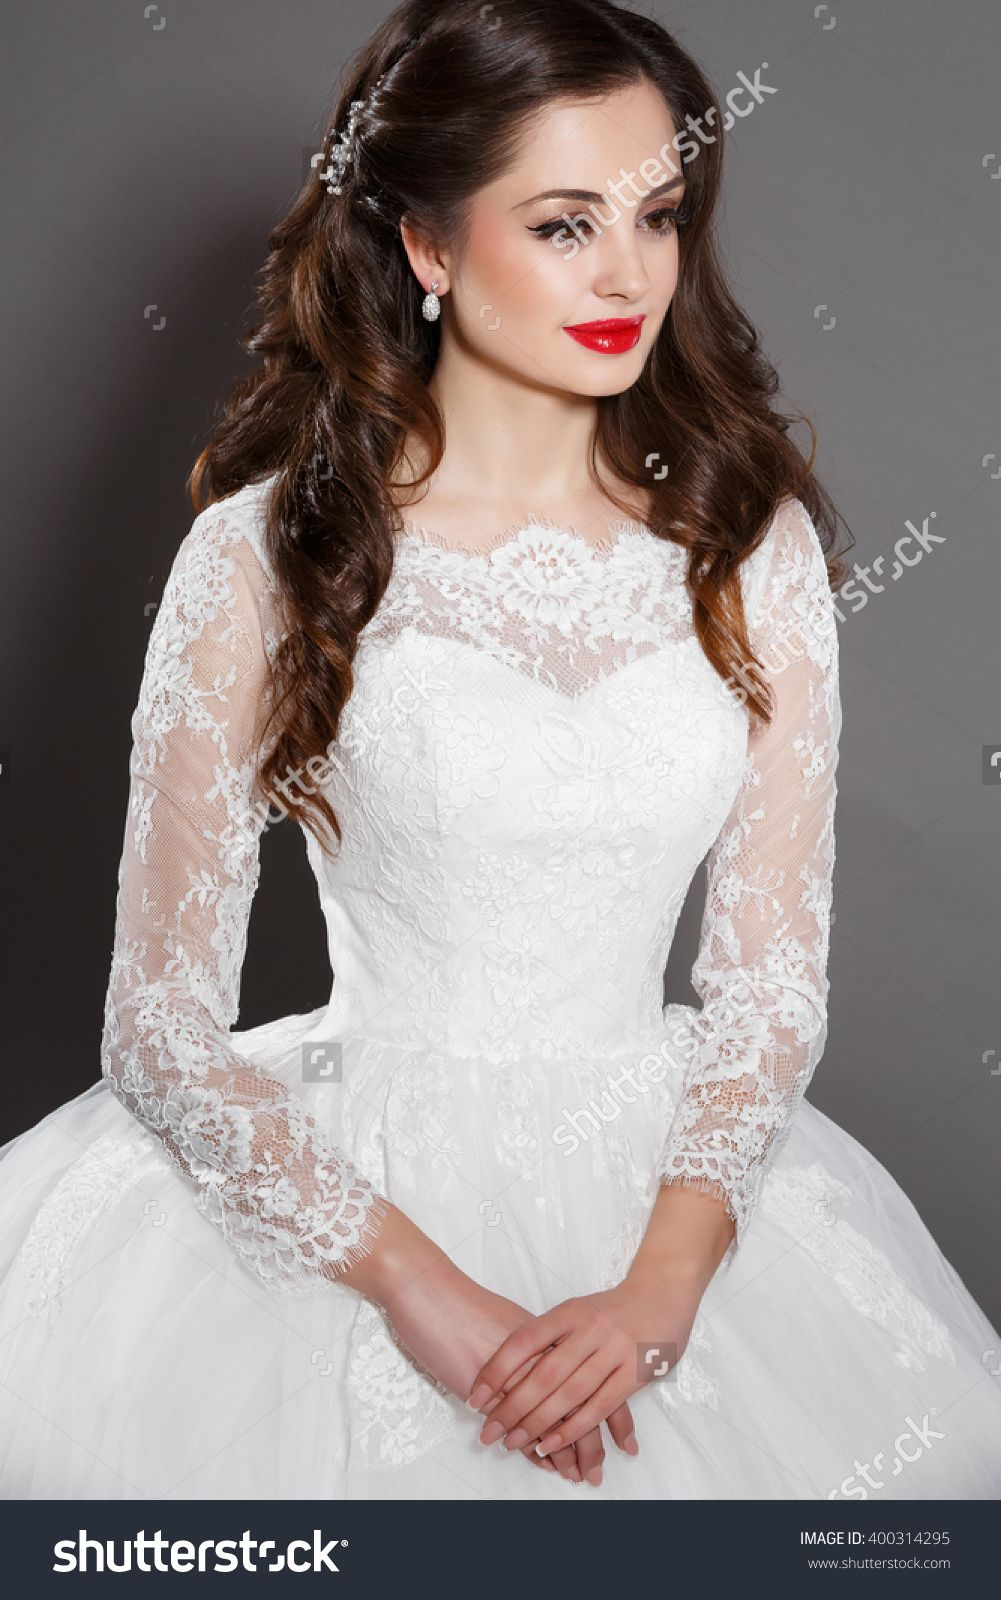 Beautiful Bride wedding makeup and hairstyle, vogue girl with long ...